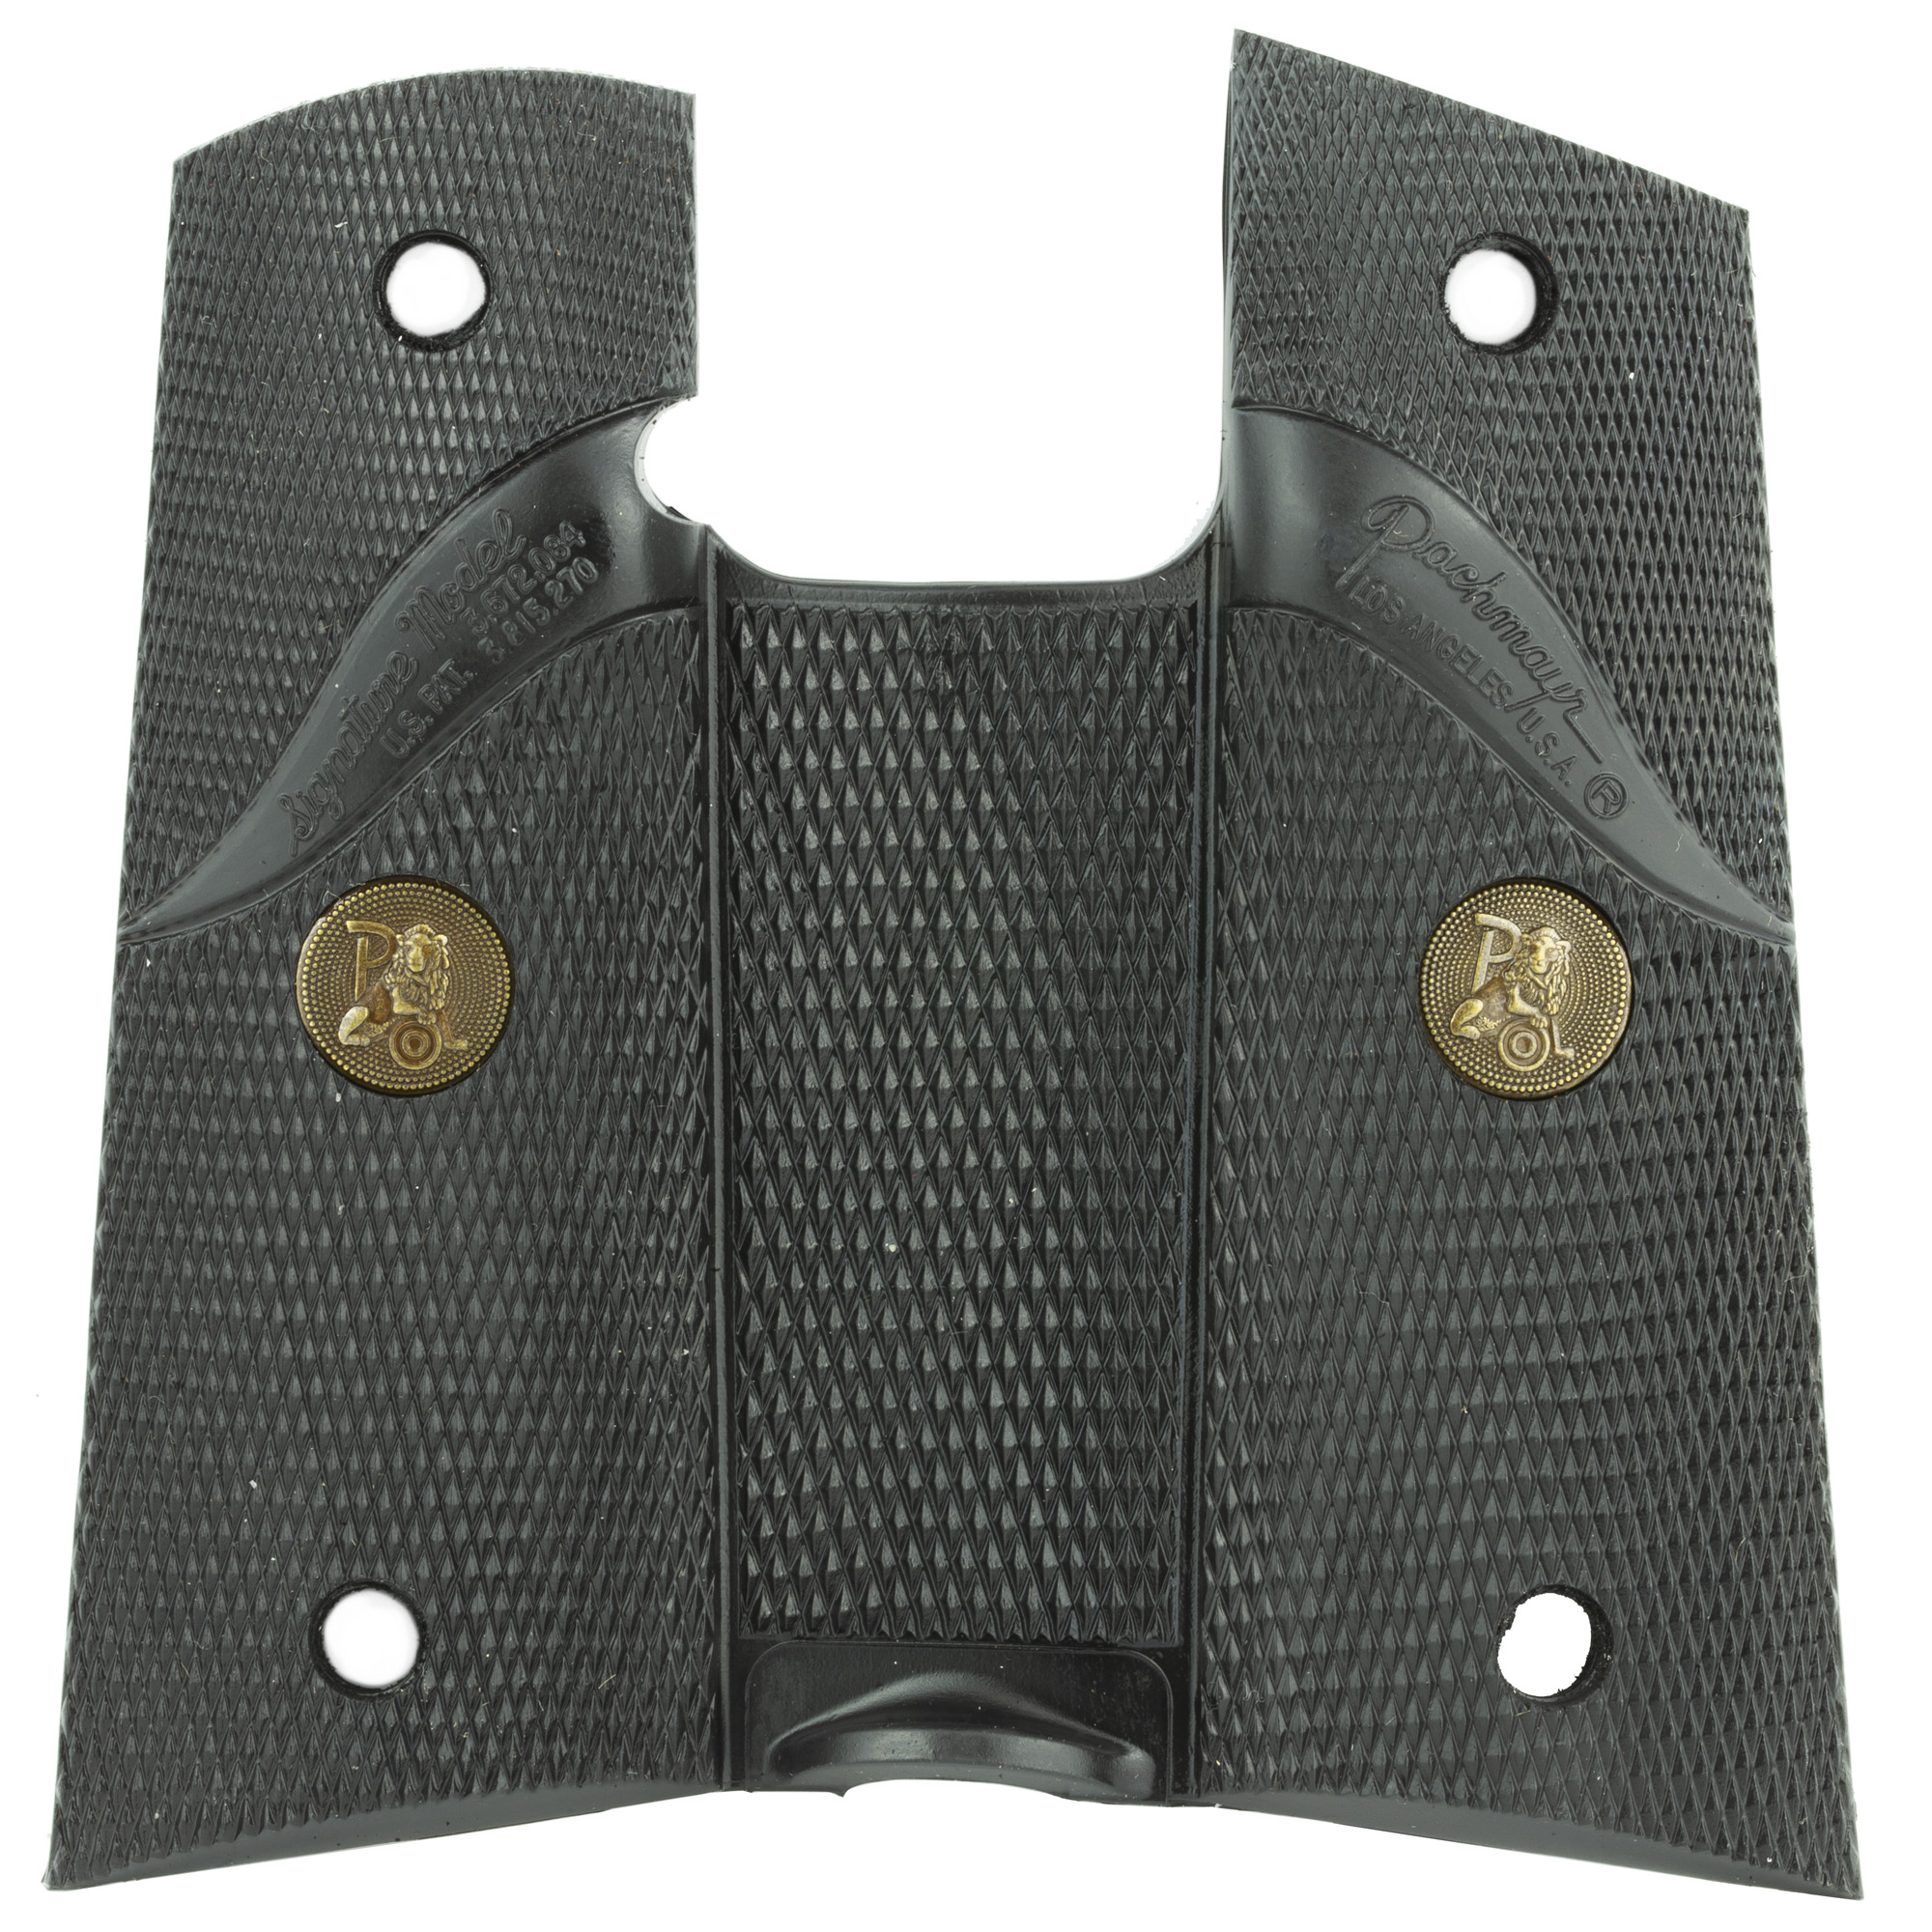 Pachmayr Signature grips feature a wraparound design and are made from rubber specially formulated for use on semi-automatic handguns. They are supplied without backstraps to be used on handguns like the 1911 model that utilizes a grip safety mechanism. Screws not included.